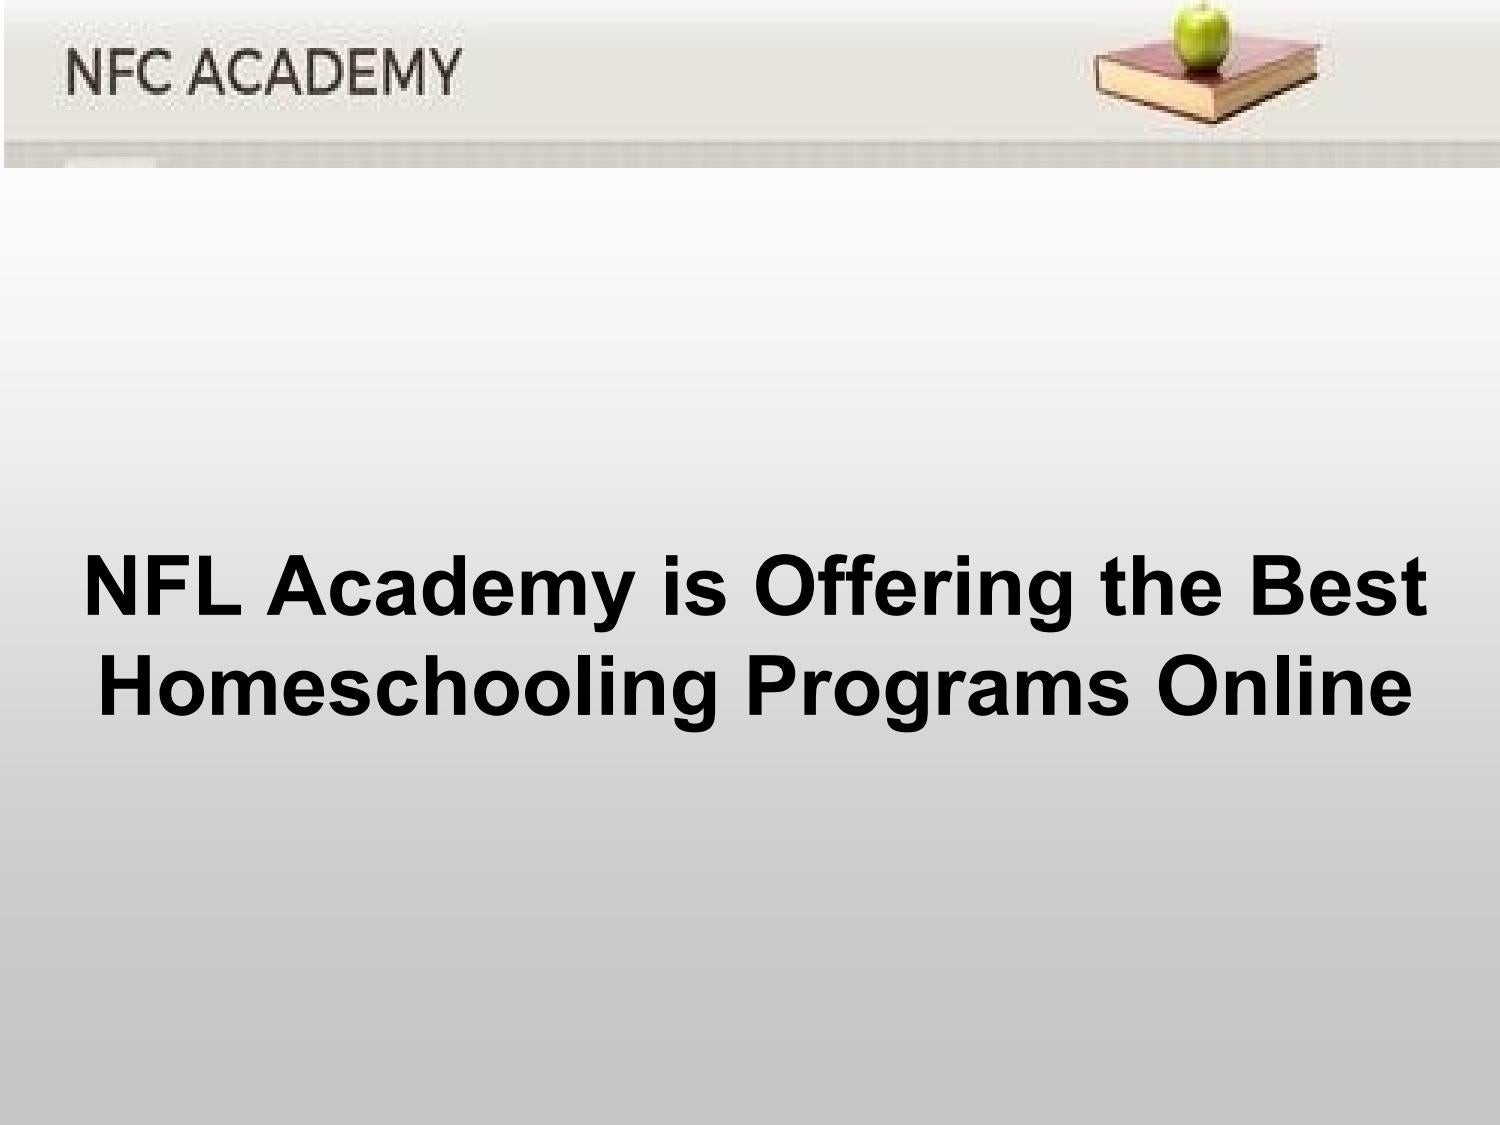 Worksheet Best Homeschool Online Programs nfl academy is offering the best homeschooling programs online by nflcacademy issuu